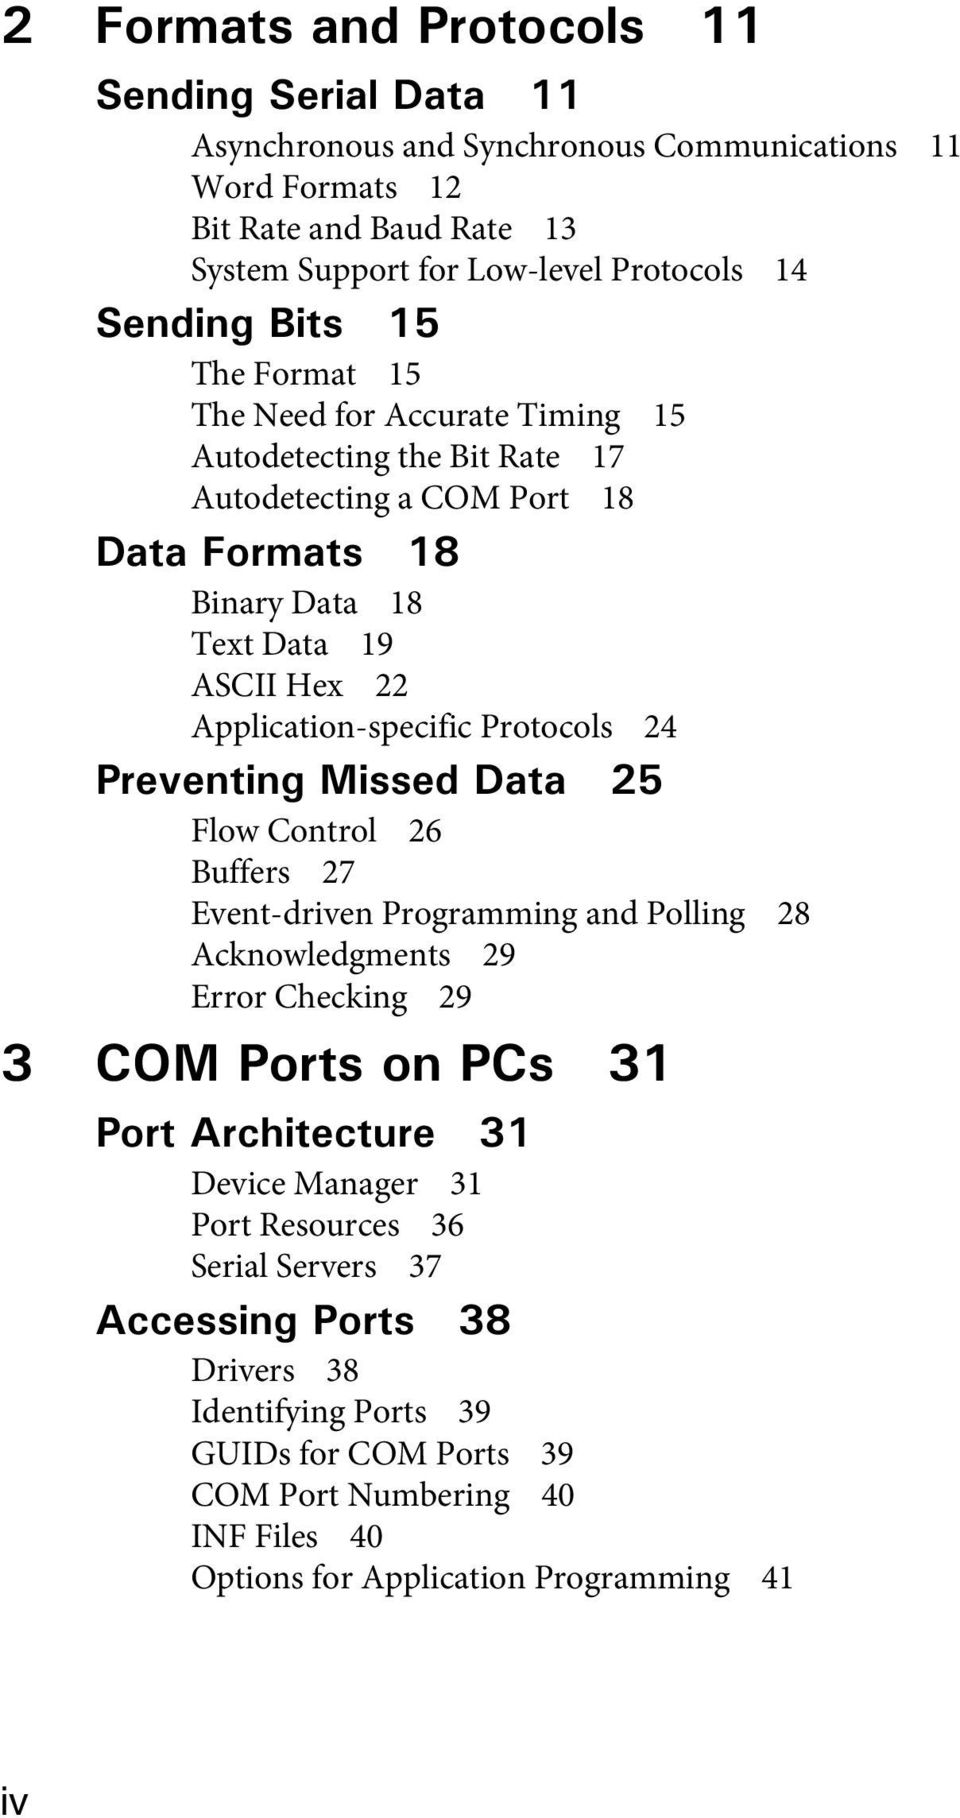 Protocols 24 Flow Control 26 Buffers 27 Event-driven Programming and Polling 28 Acknowledgments 29 Error Checking 29 Device Manager 31 Port Resources